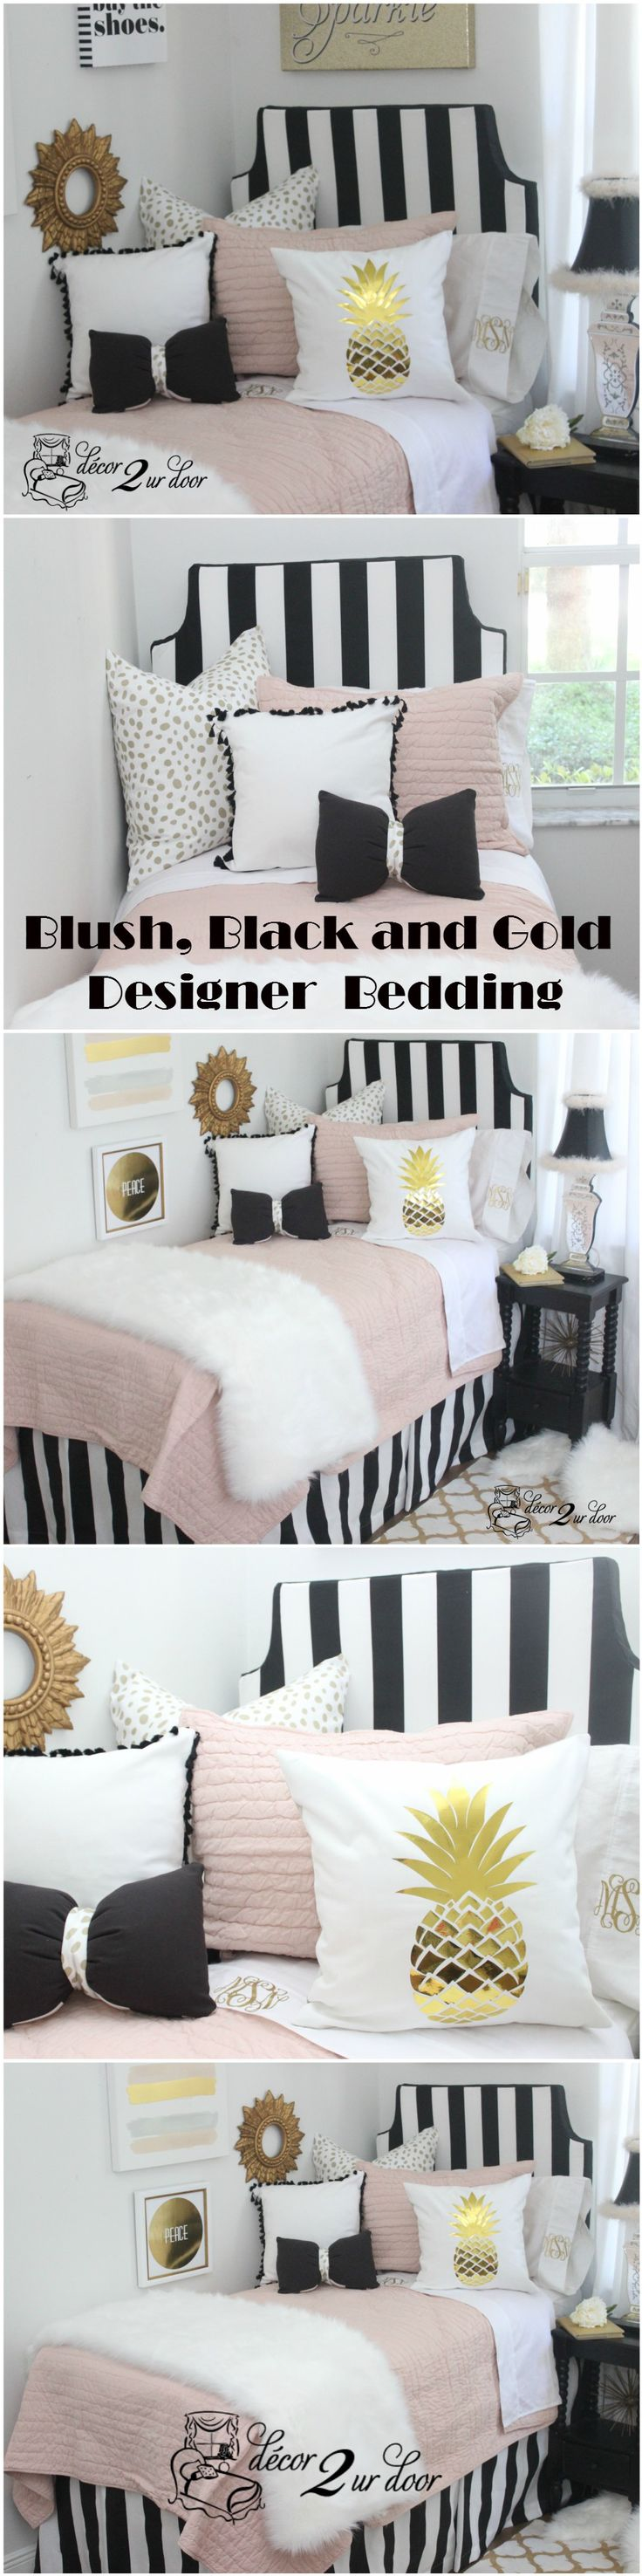 Black and white bed sheets designs - Pink And Black Dorm Room Bedding Sets Fun Fringe And Fur This